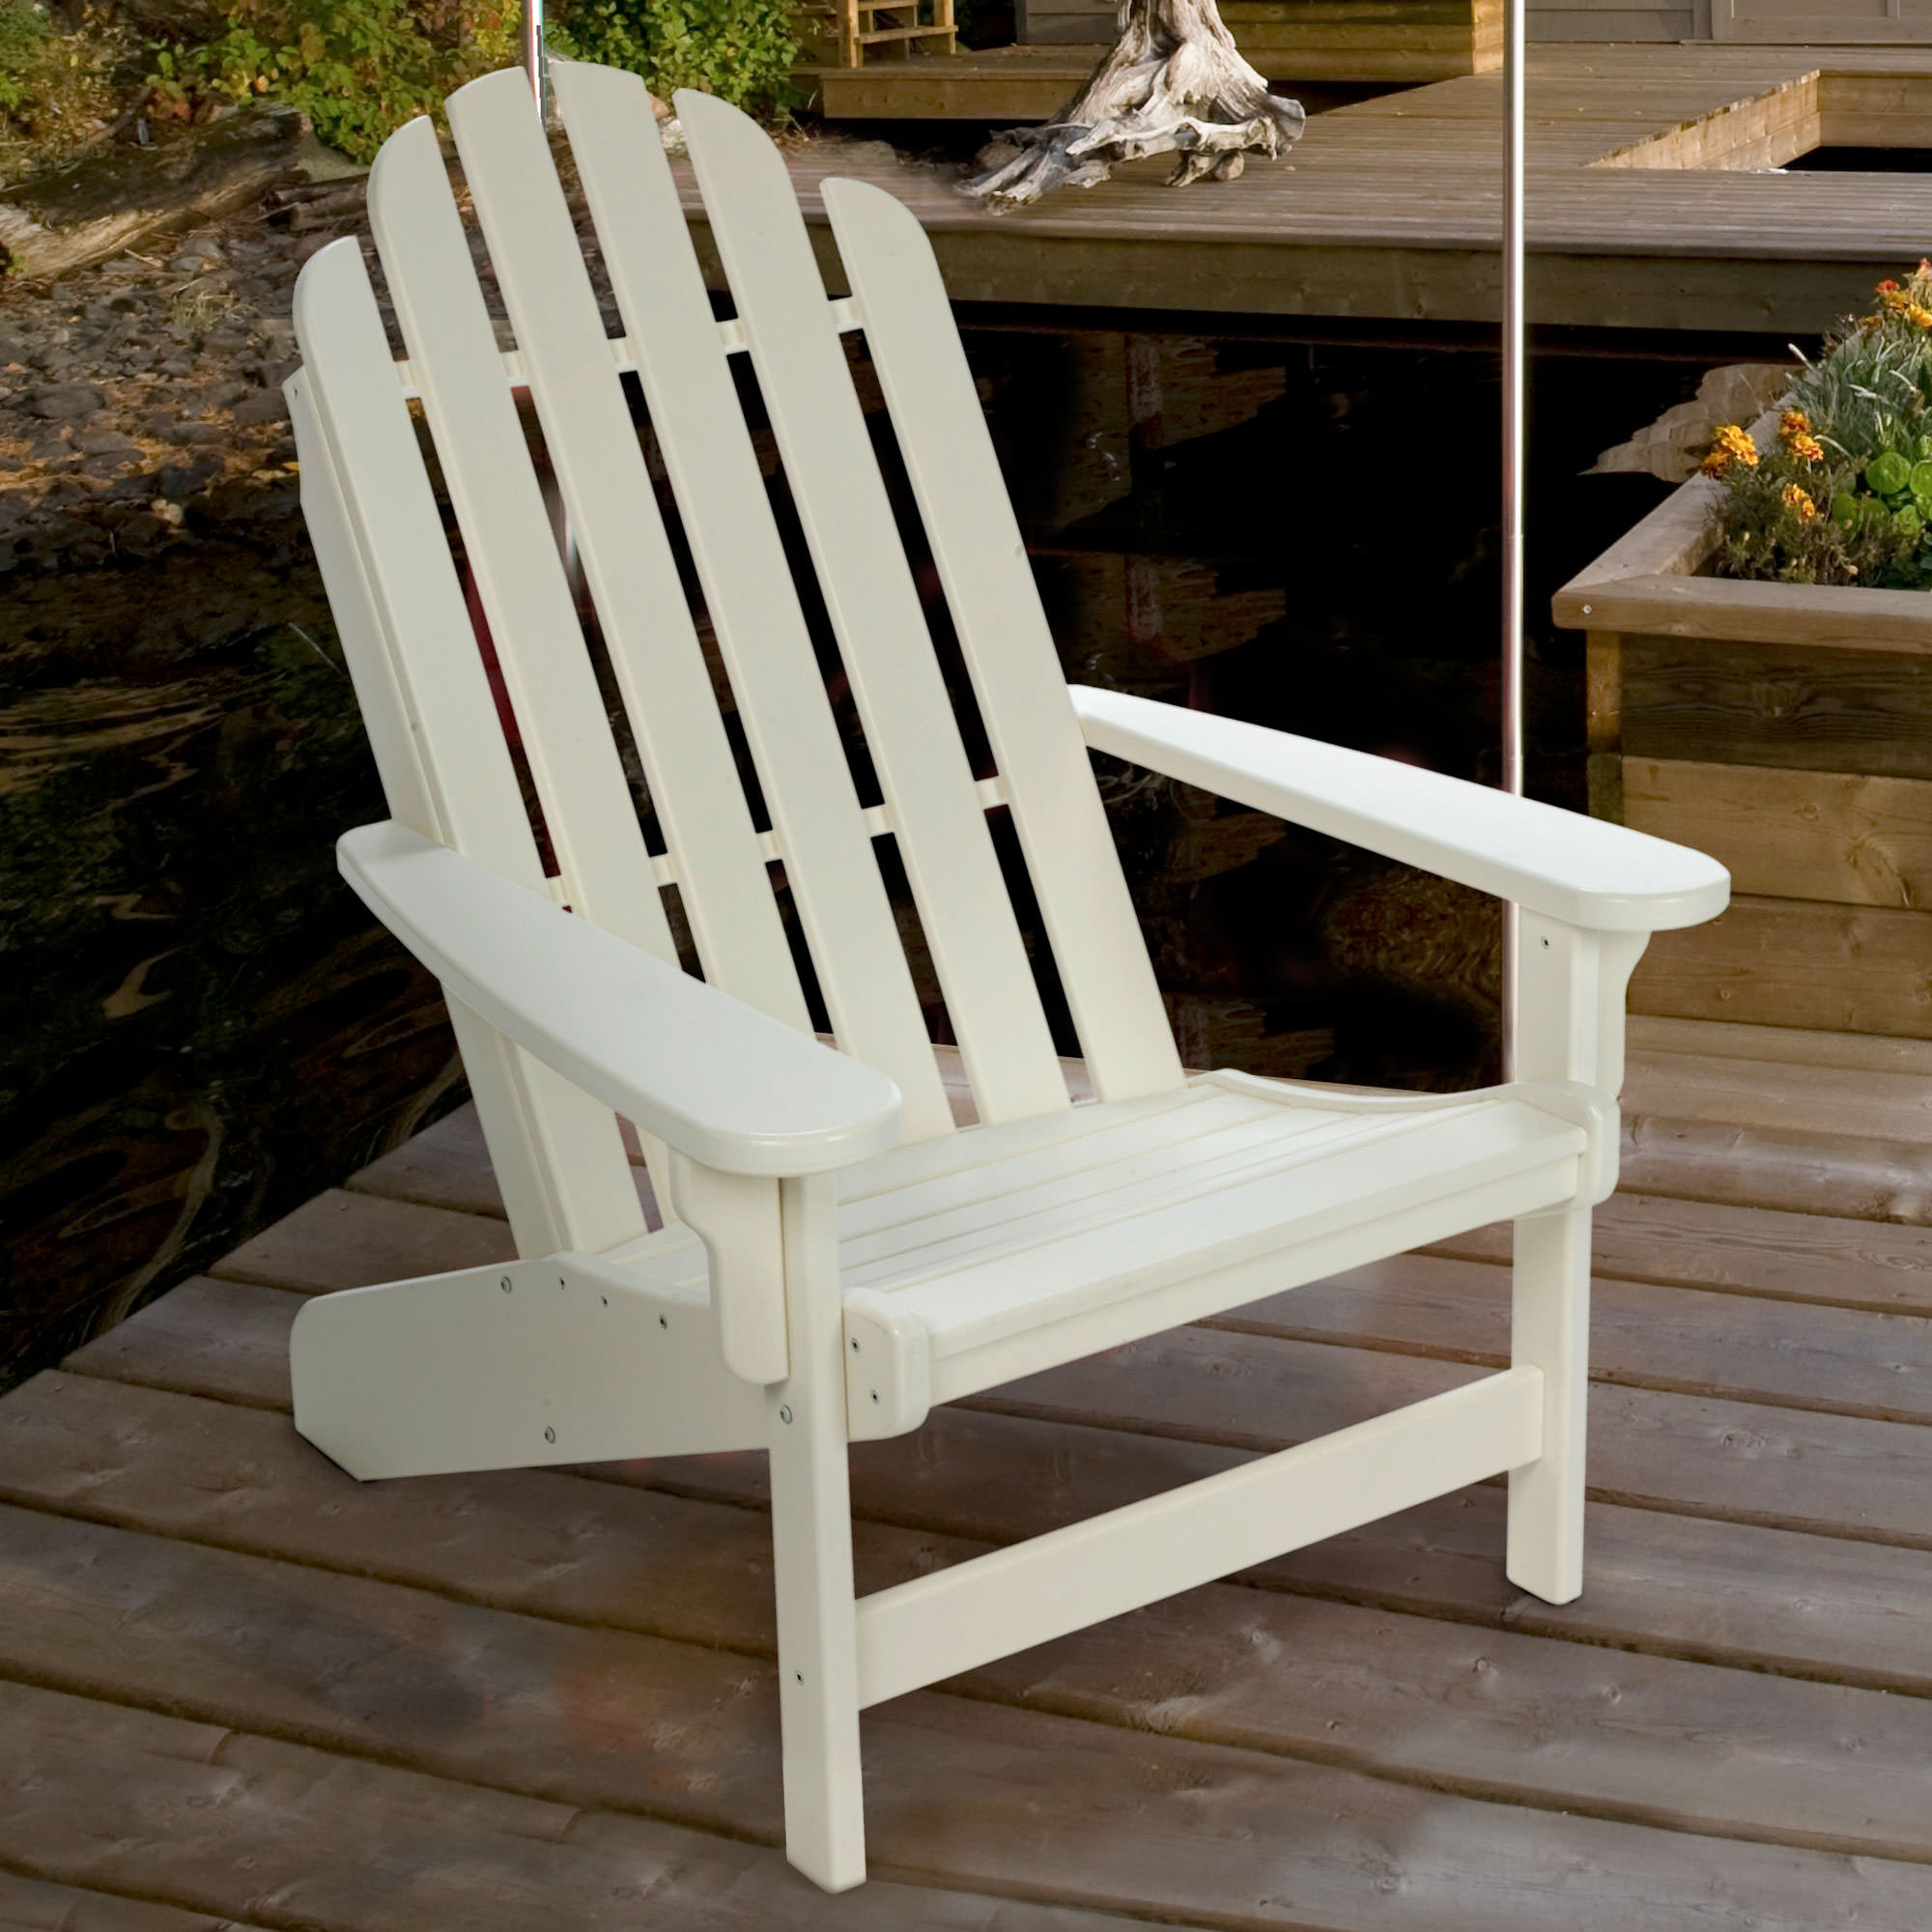 Durawood Essentials Adirondack Chair - White